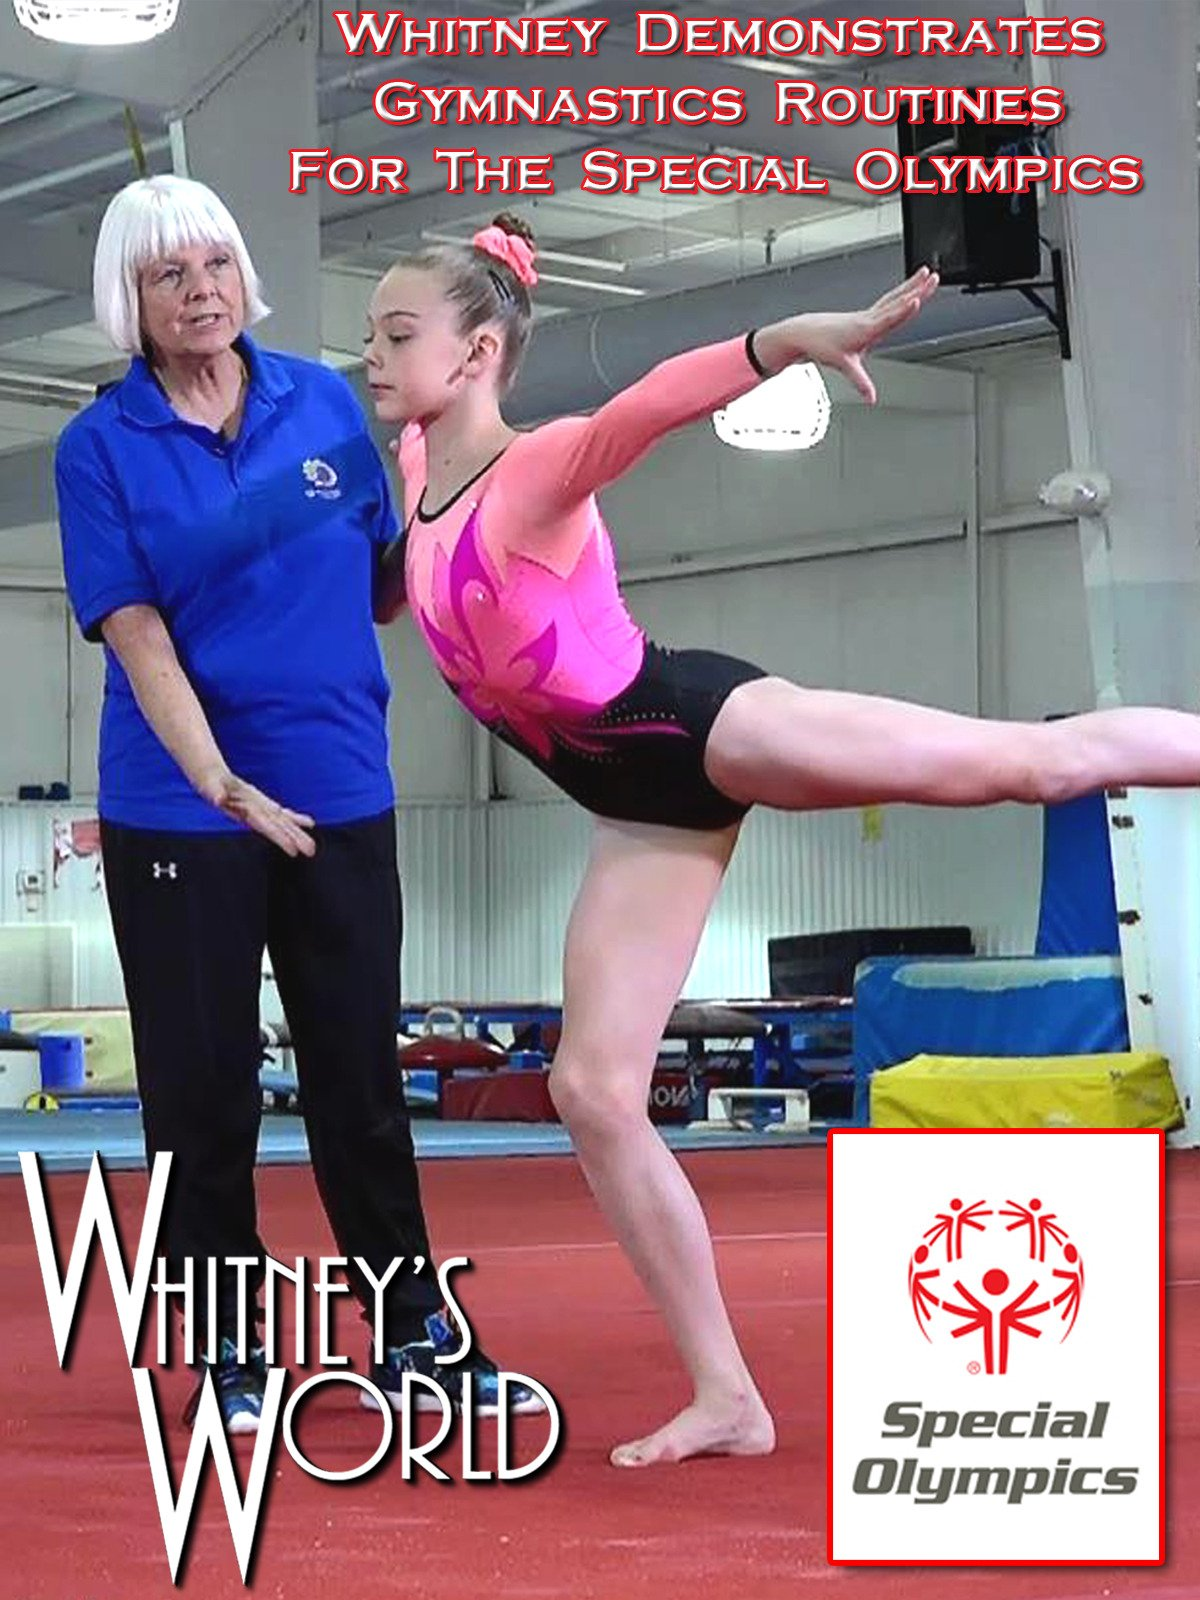 Whitney Demonstrates Gymnastics Routines for the Special Olympics on Amazon Prime Video UK